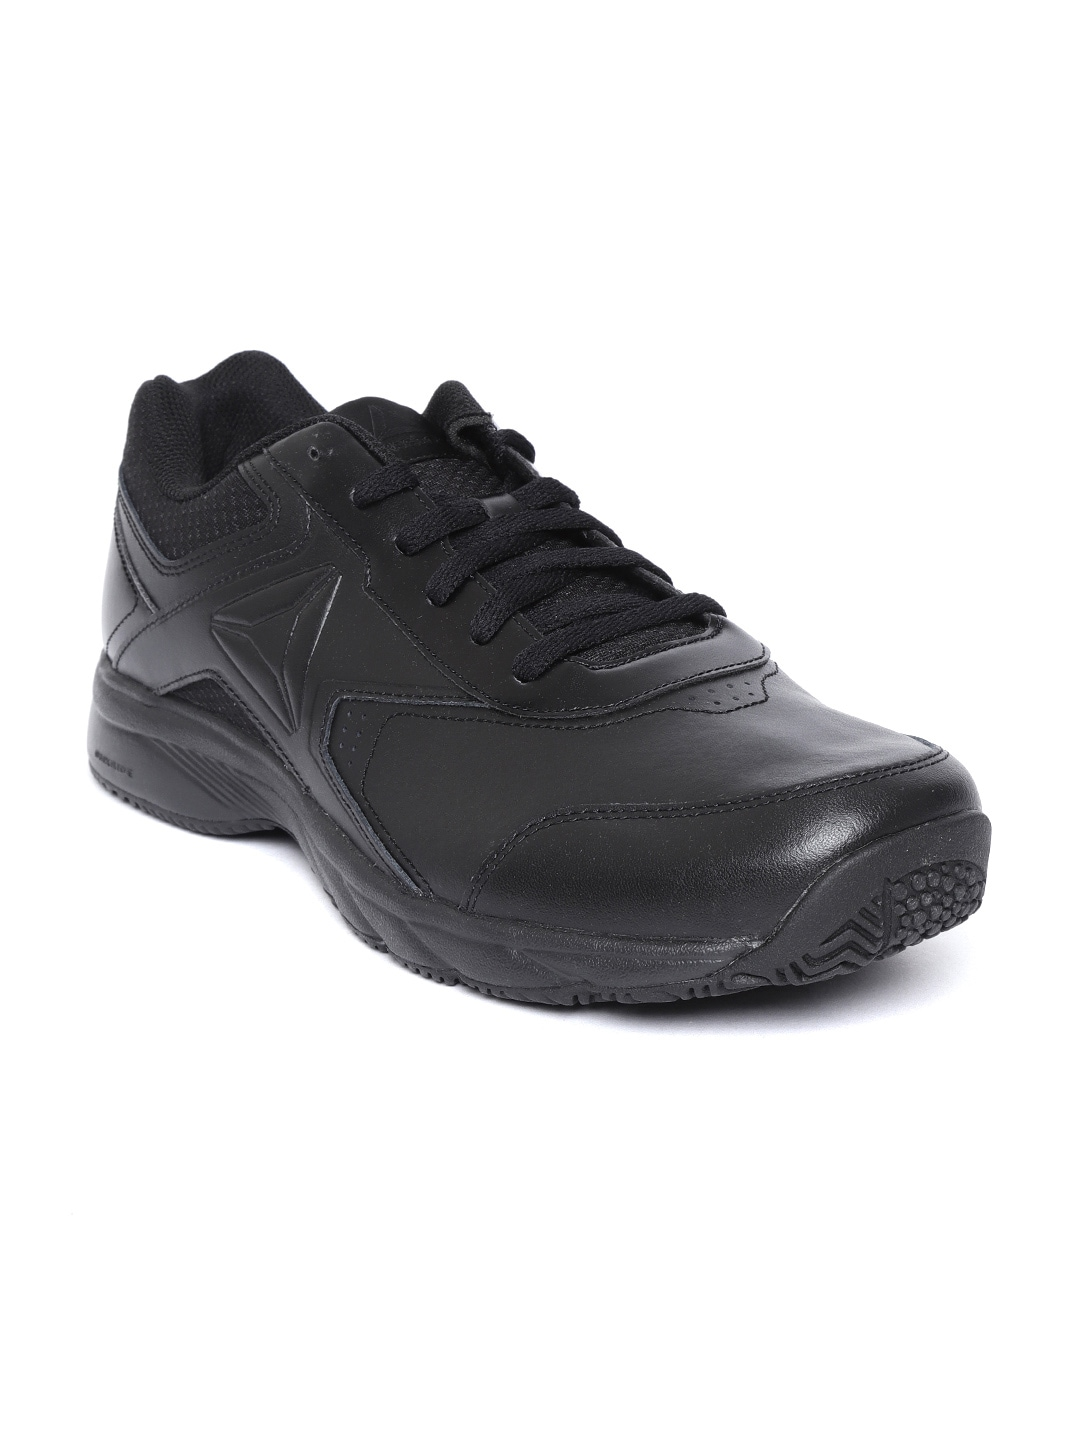 Reebok Walking Shoes Men - Buy Reebok Walking Shoes Men online in India b86bdb2b2